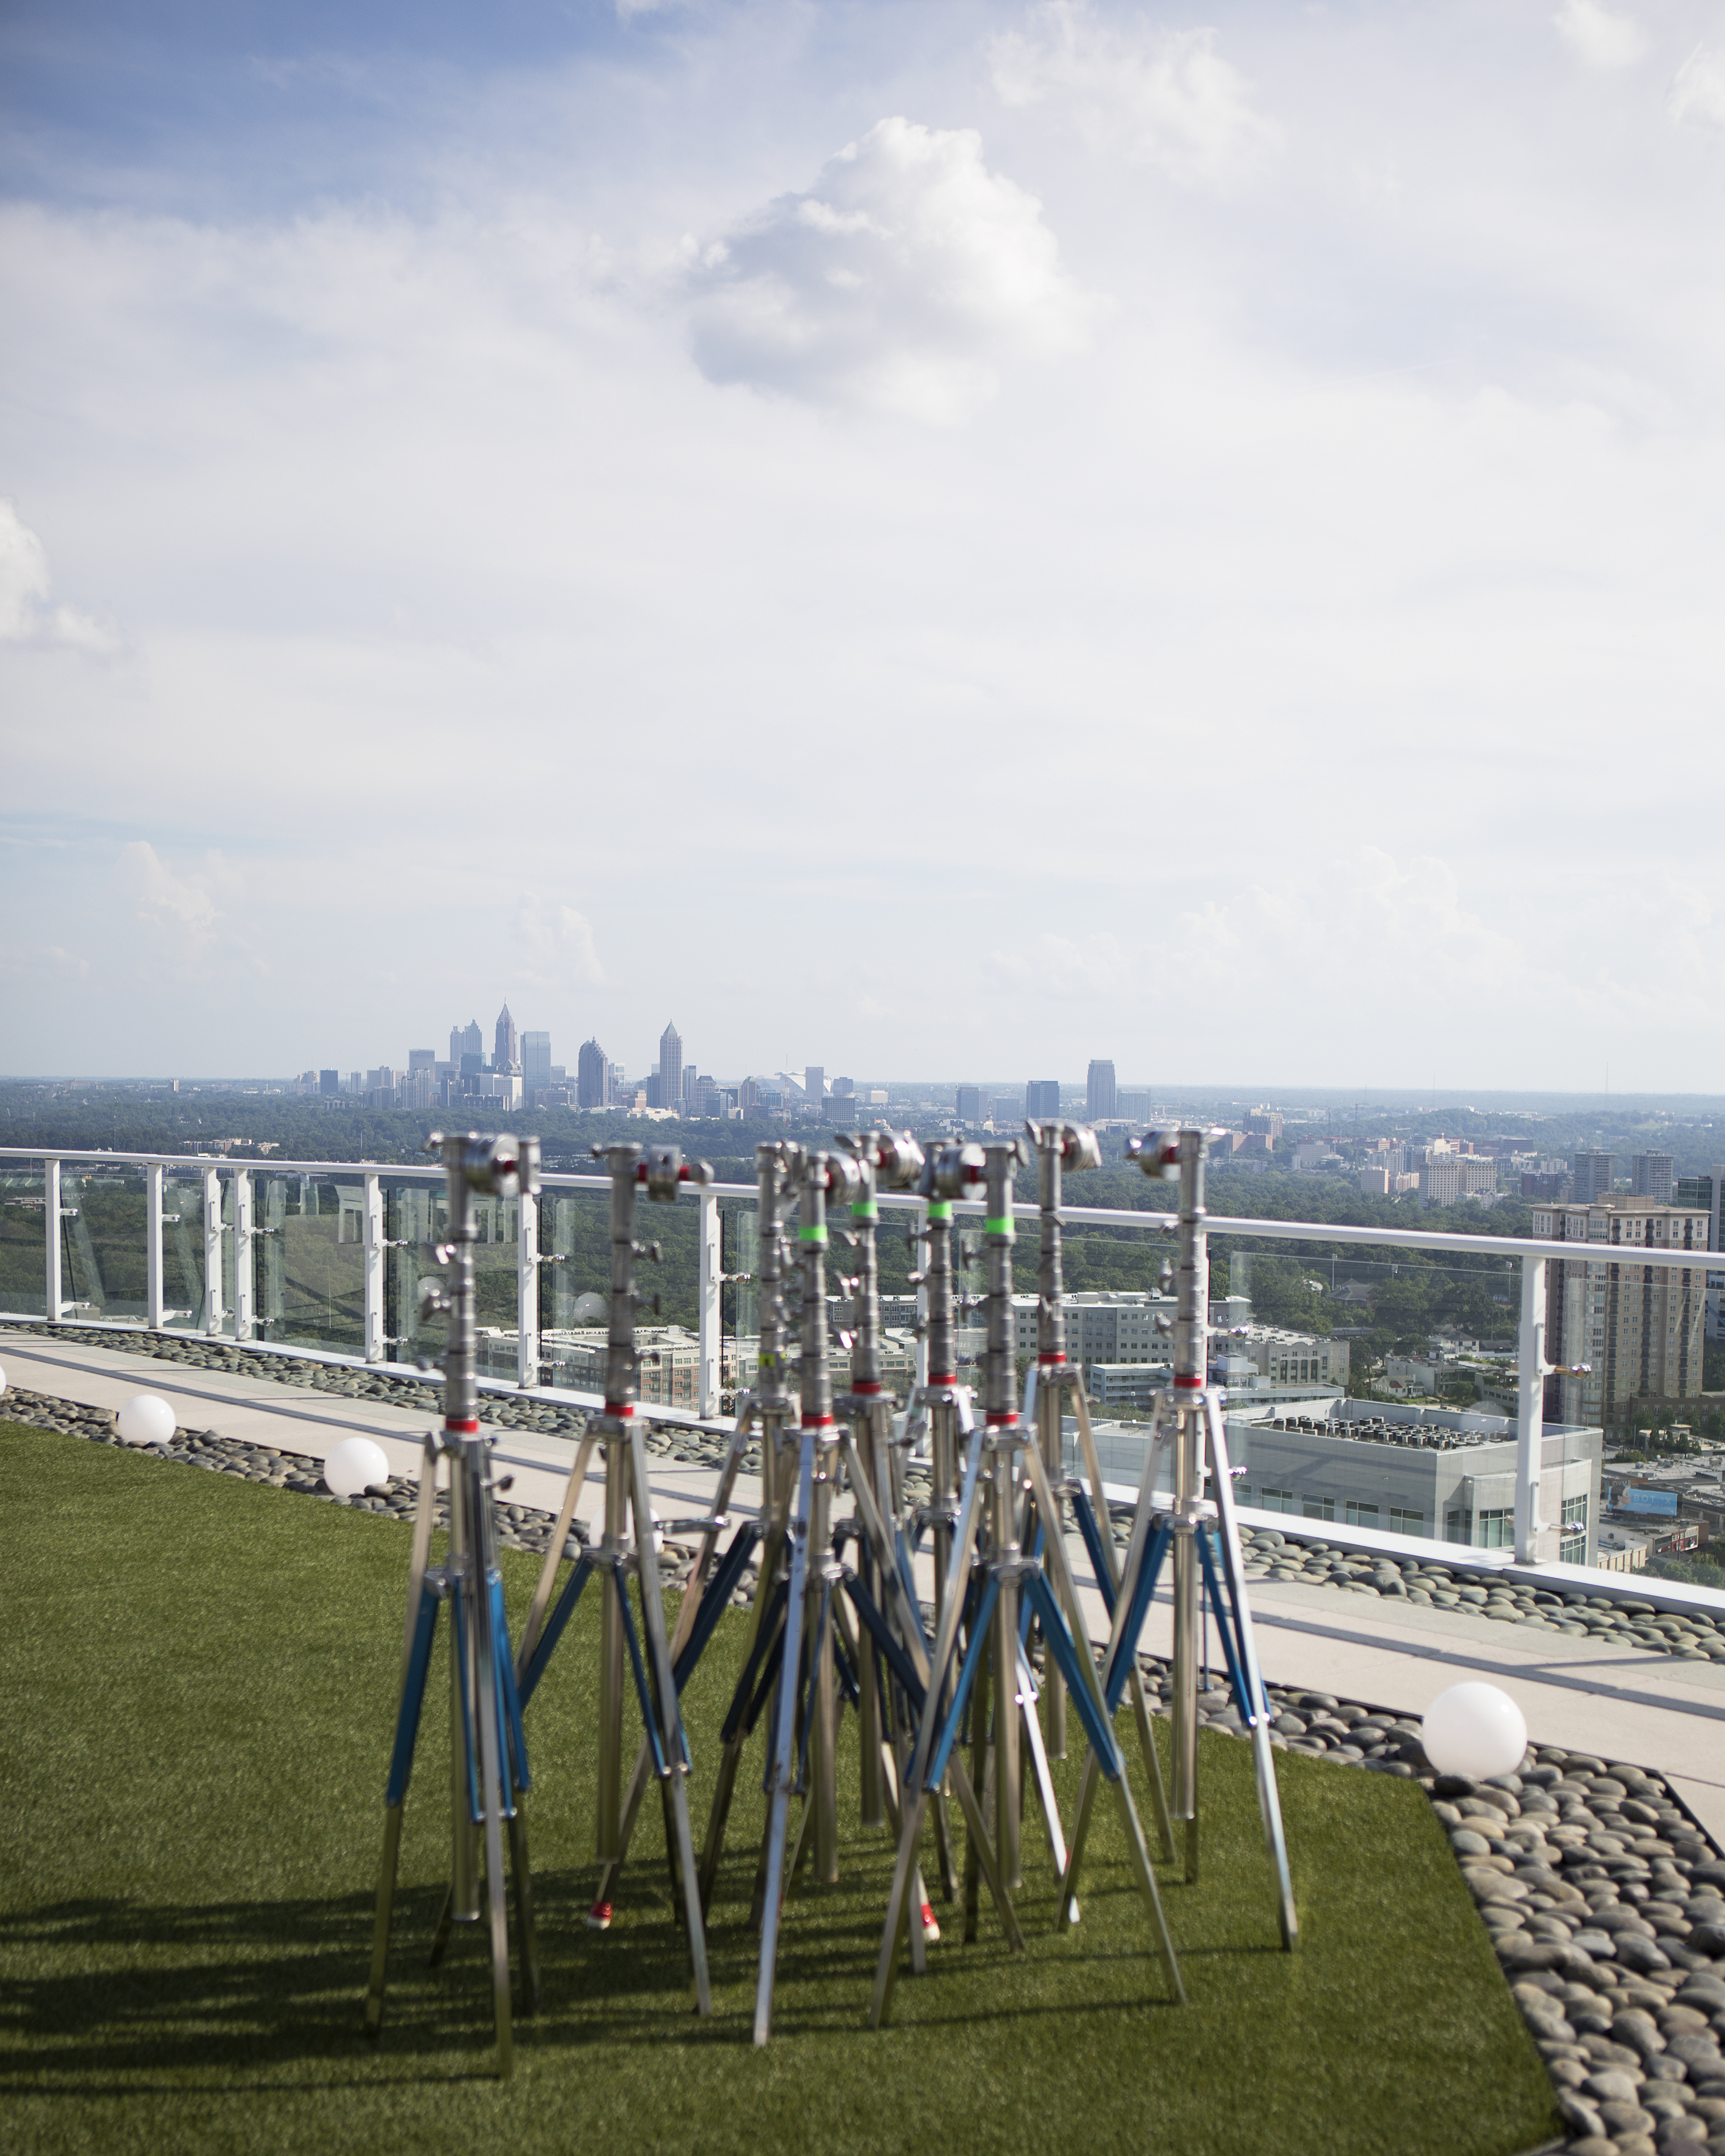 A cluster of lighting stands on the set of comedy Little by Universal Pictures' overlook the Atlanta skyline from the Terminus building.